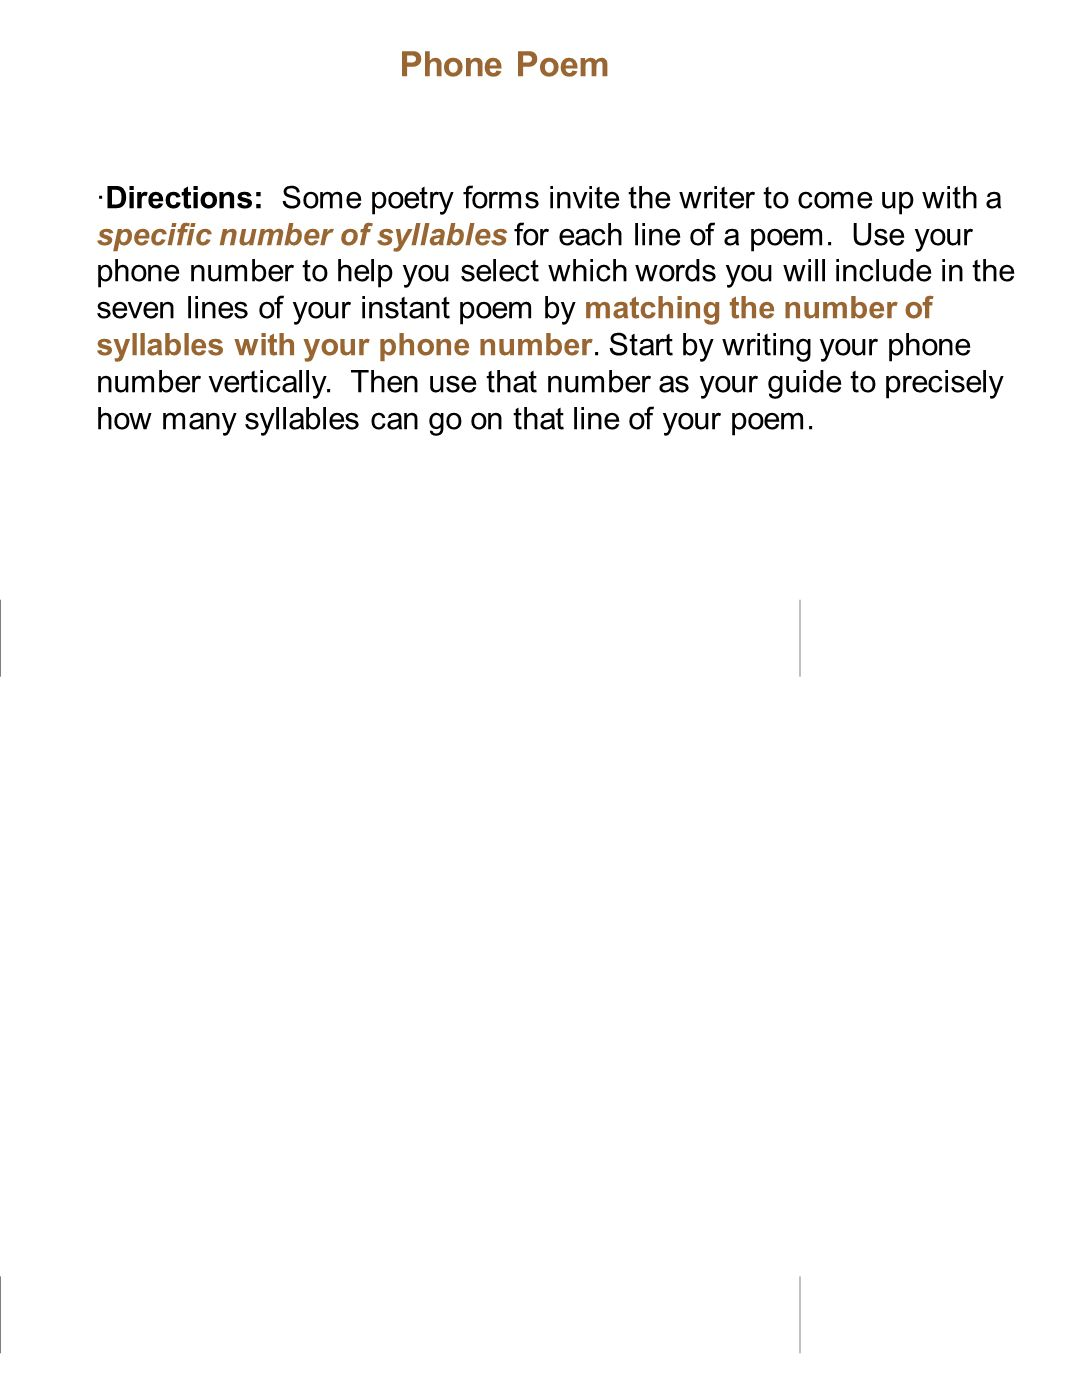 Phone Poem ·Directions: Some poetry forms invite the writer to come up with a specific number of syllables for each line of a poem. Use your phone num